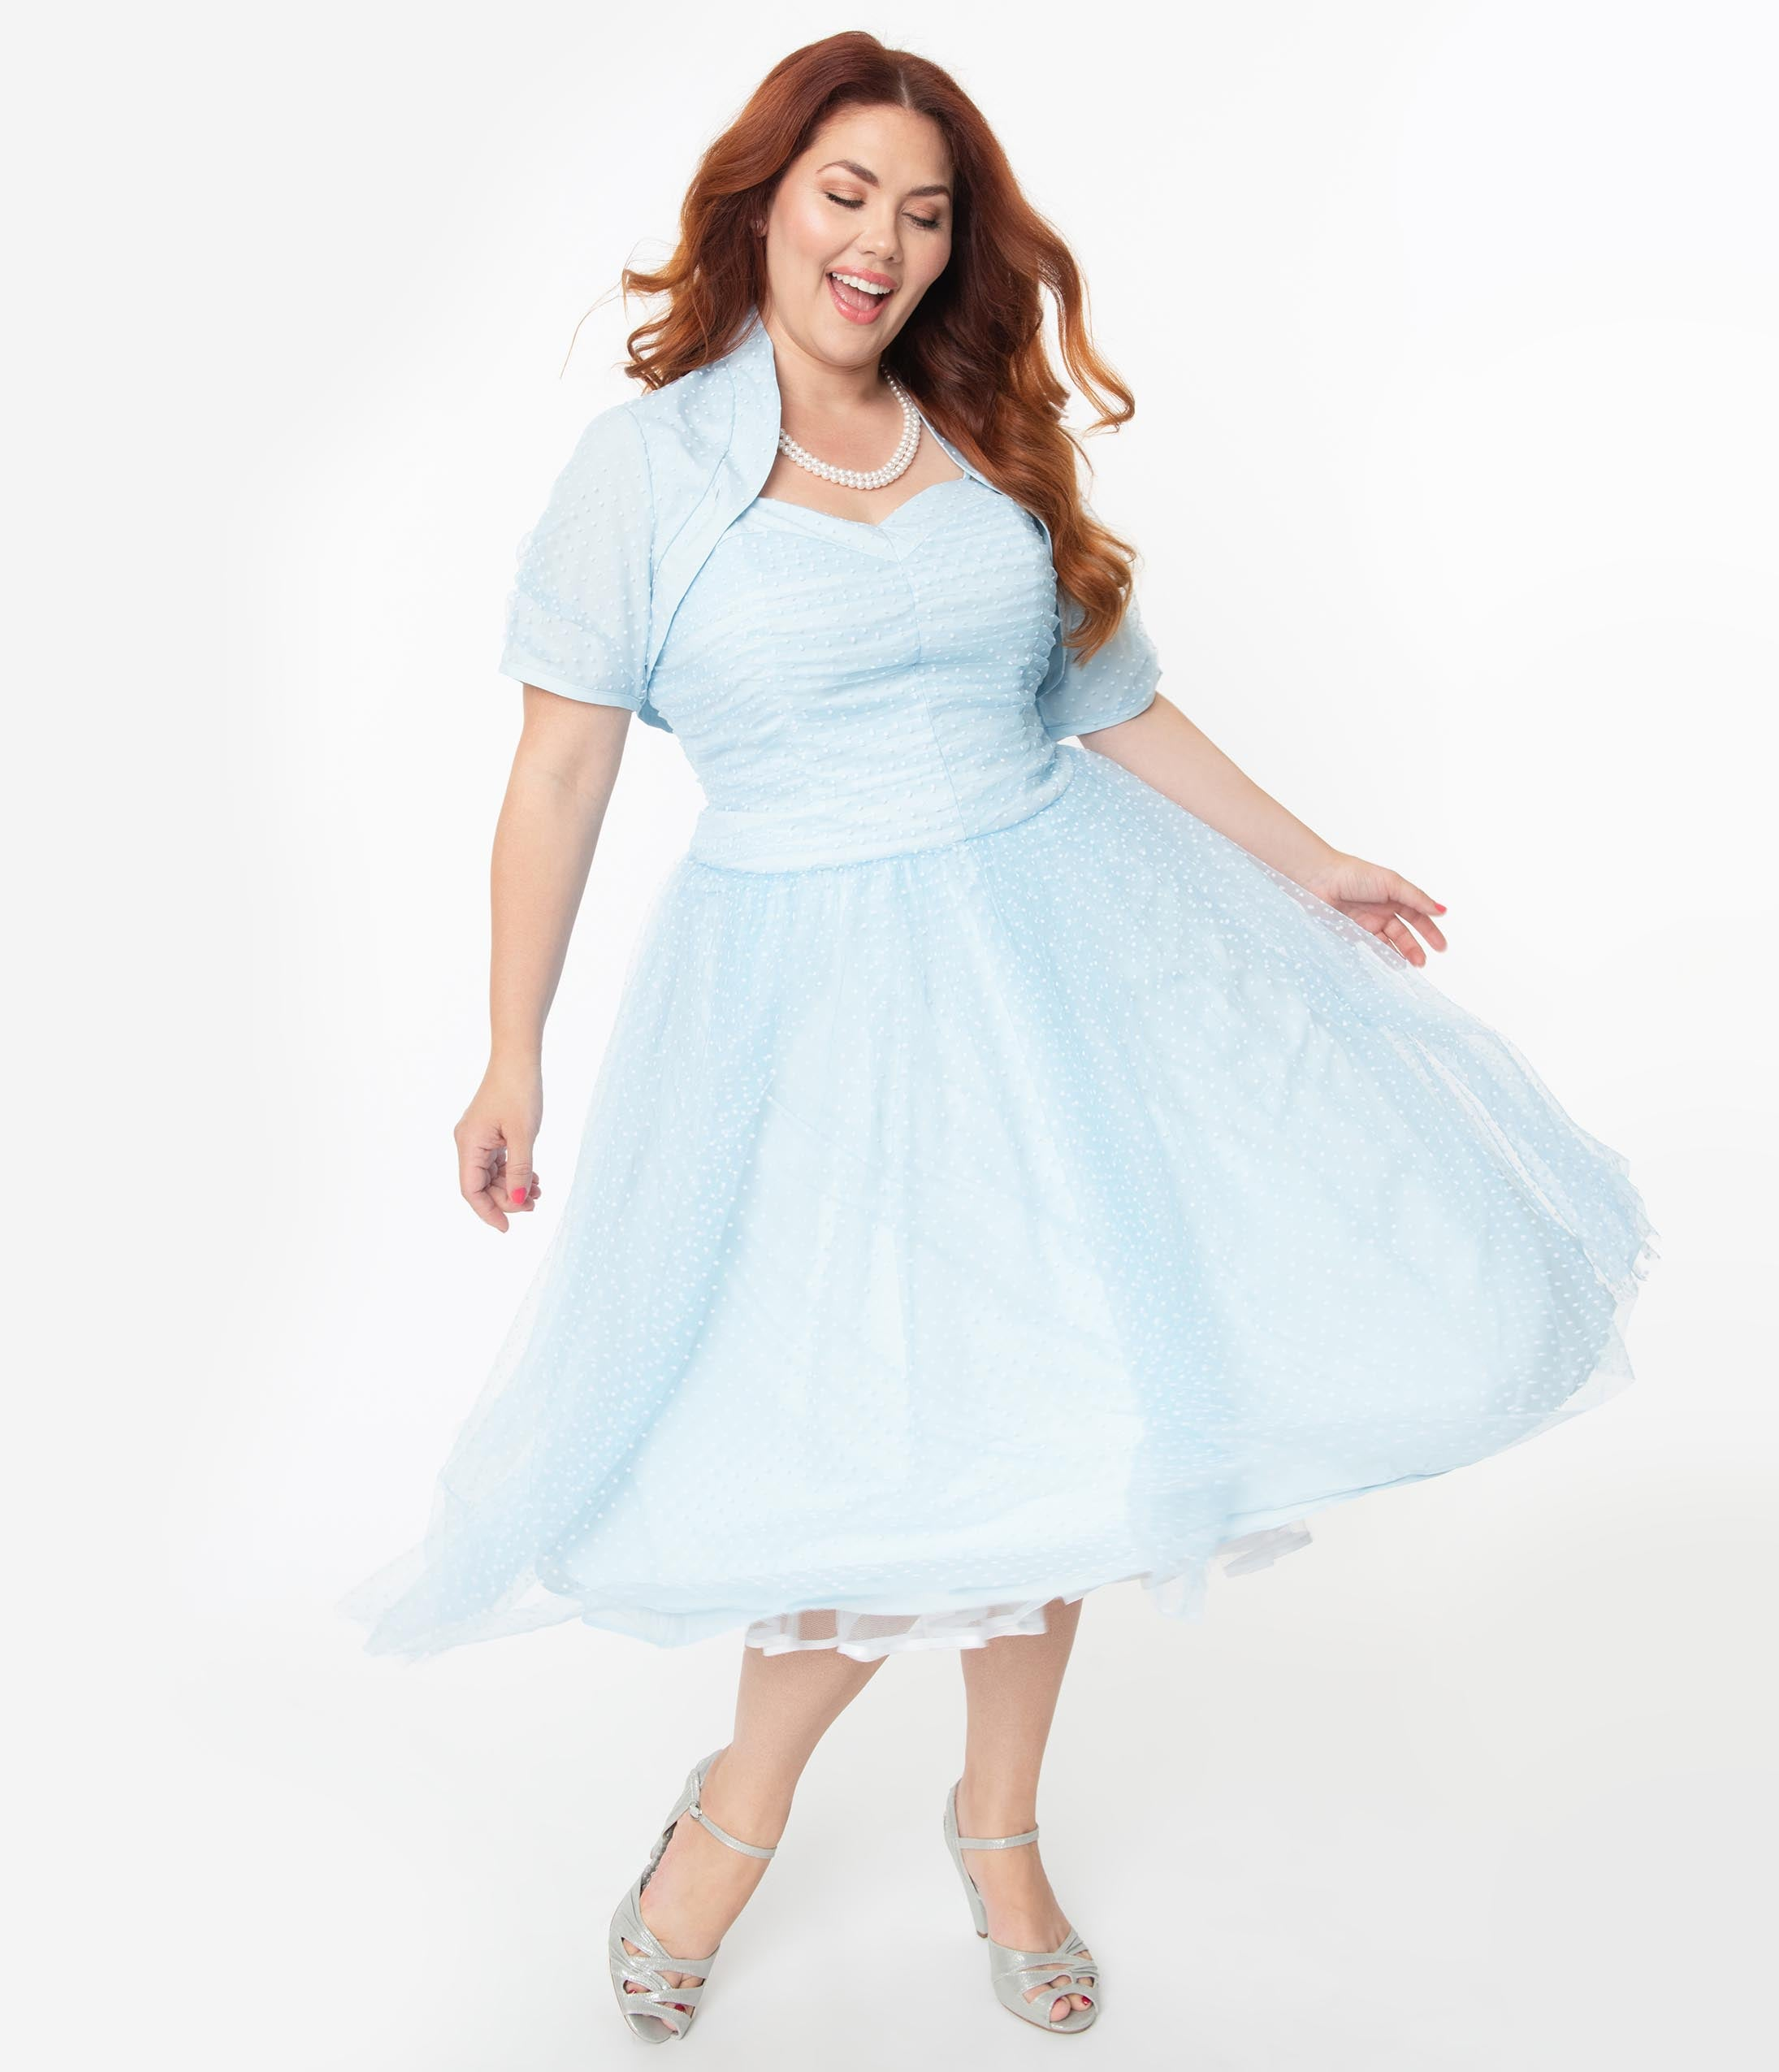 Vintage 50s Dresses: Best 1950s Dress Styles I Love Lucy X Unique Vintage Plus Size Light Blue Honeymoon Swing Dress $148.00 AT vintagedancer.com